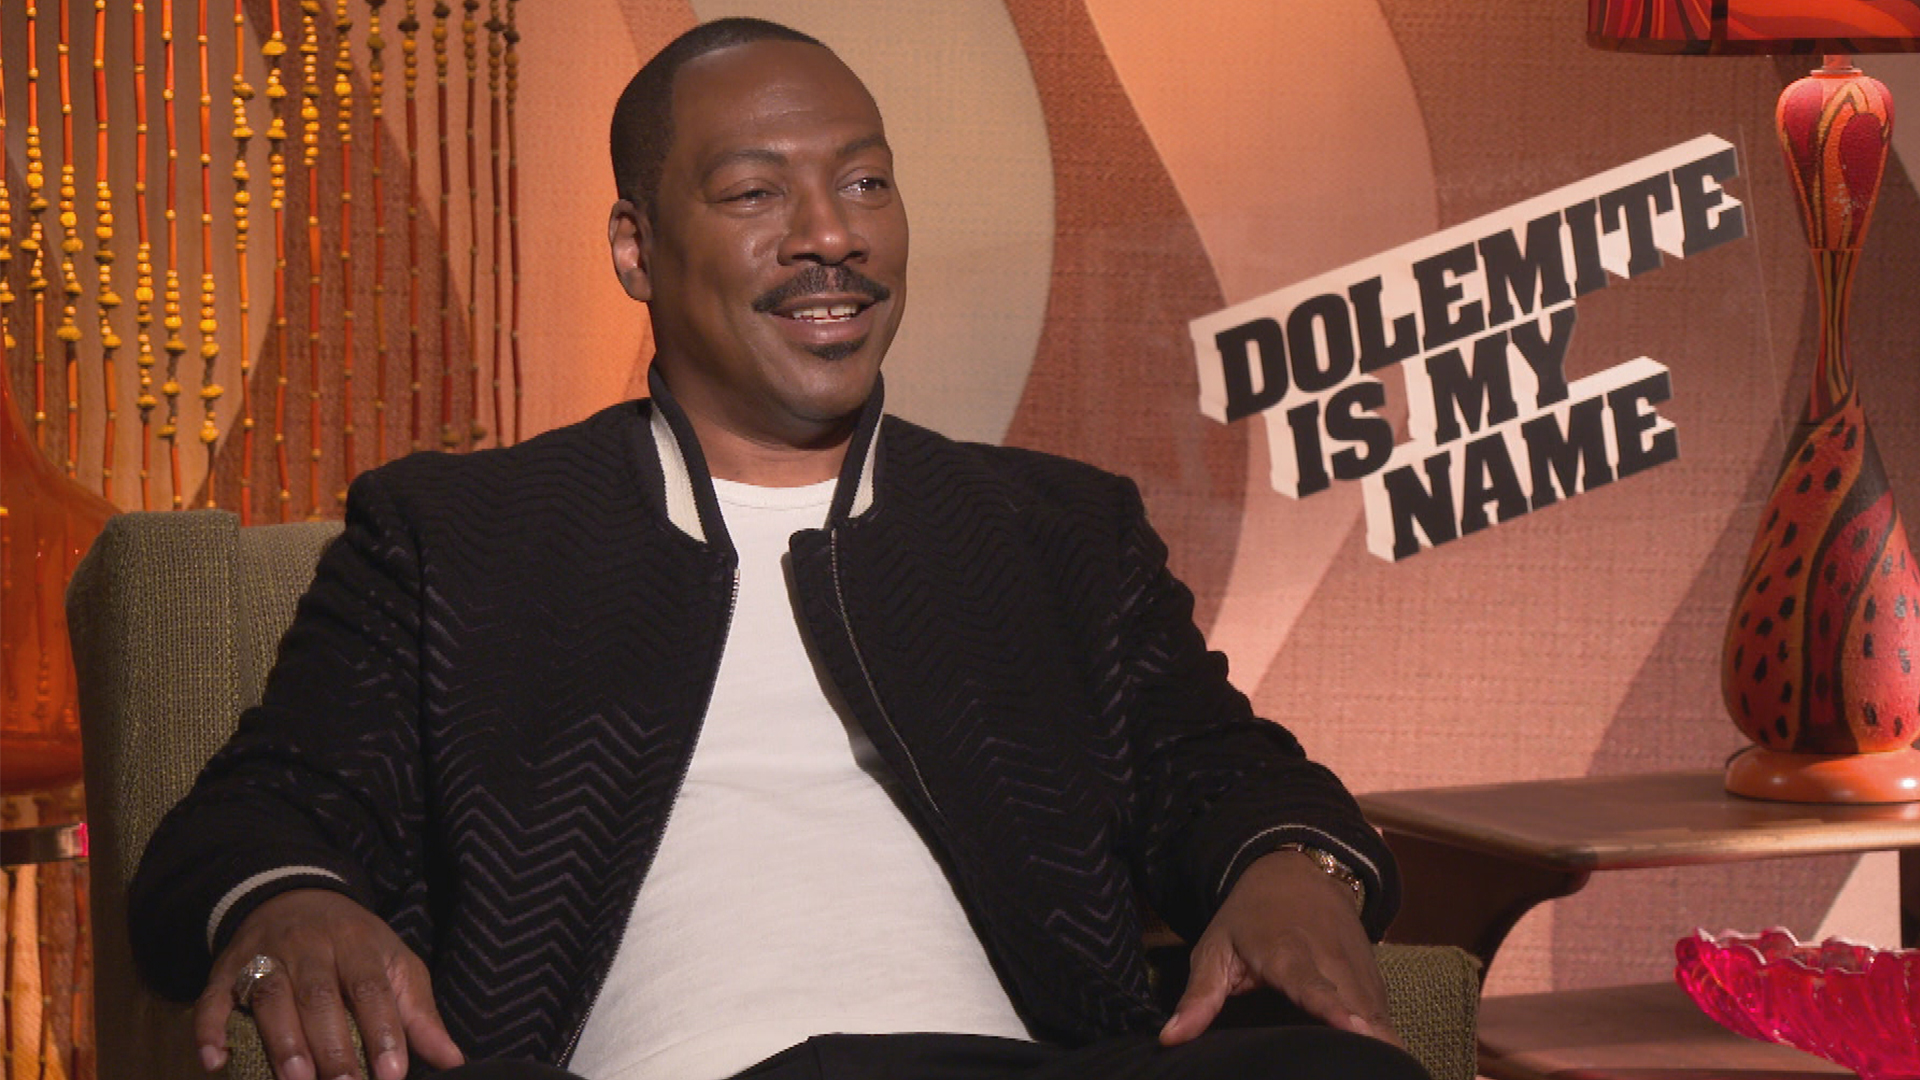 Eddie Murphy Shares Why Hes Finally Hosting Saturday Night Live 1920x1080